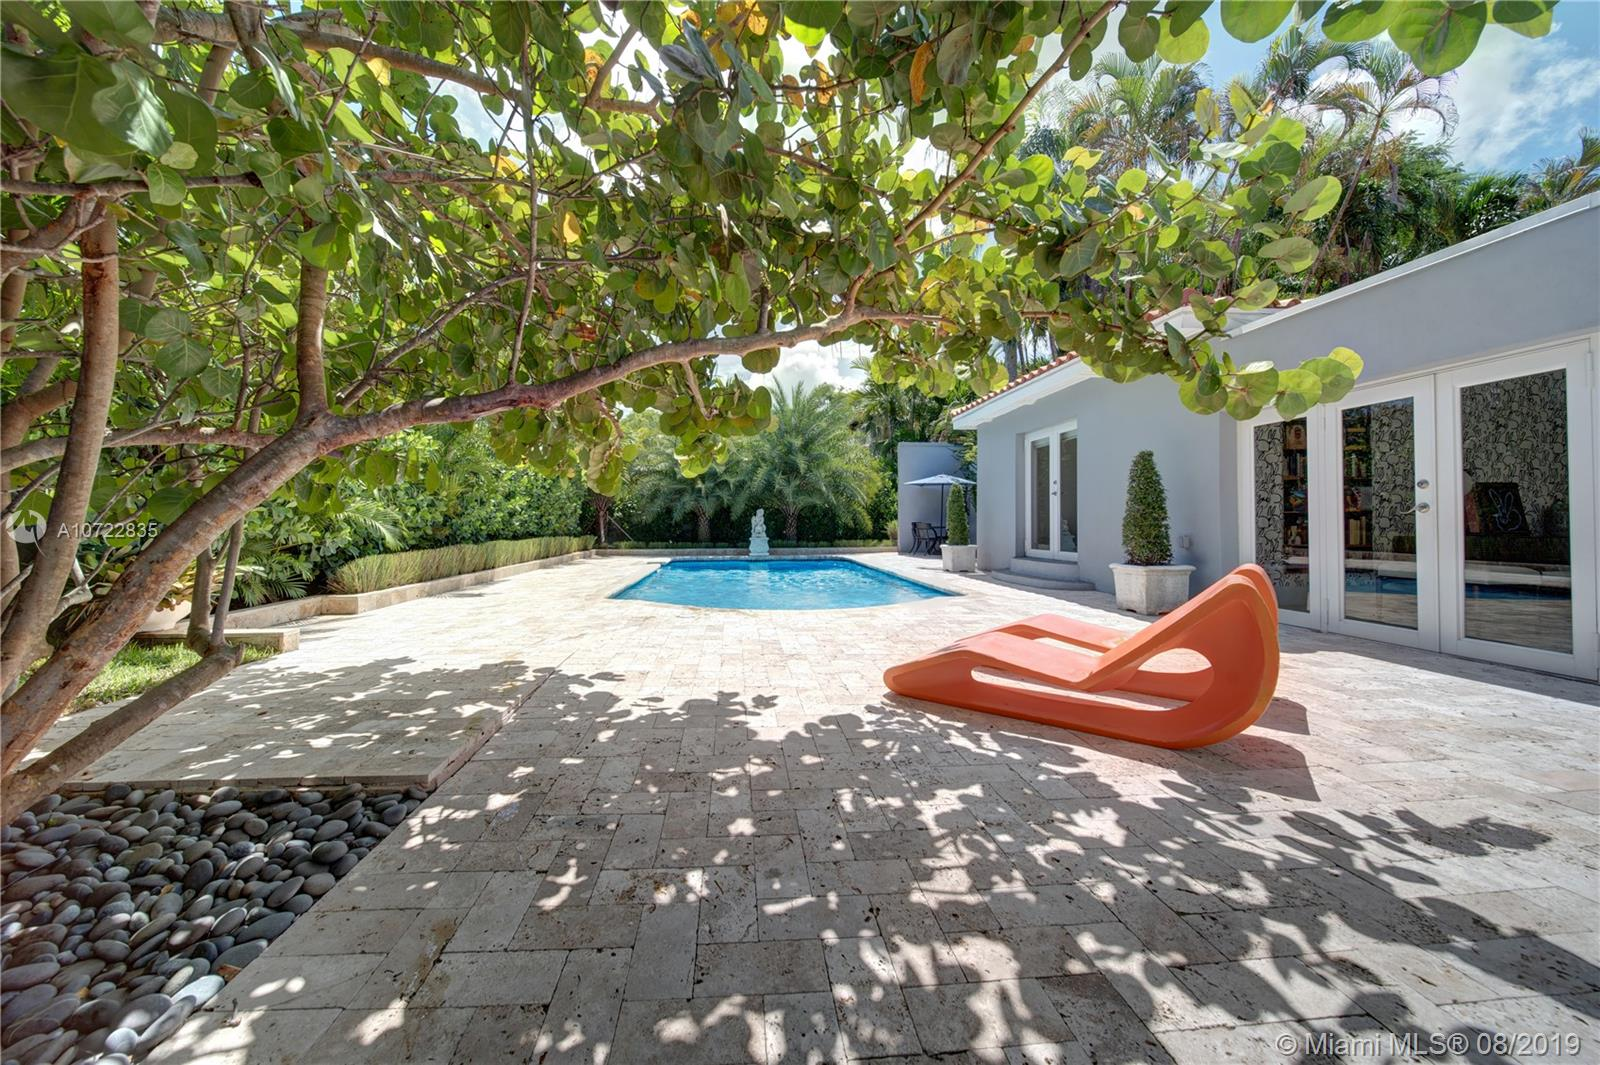 873 NE 96th St 33138 - One of Miami Shores Homes for Sale